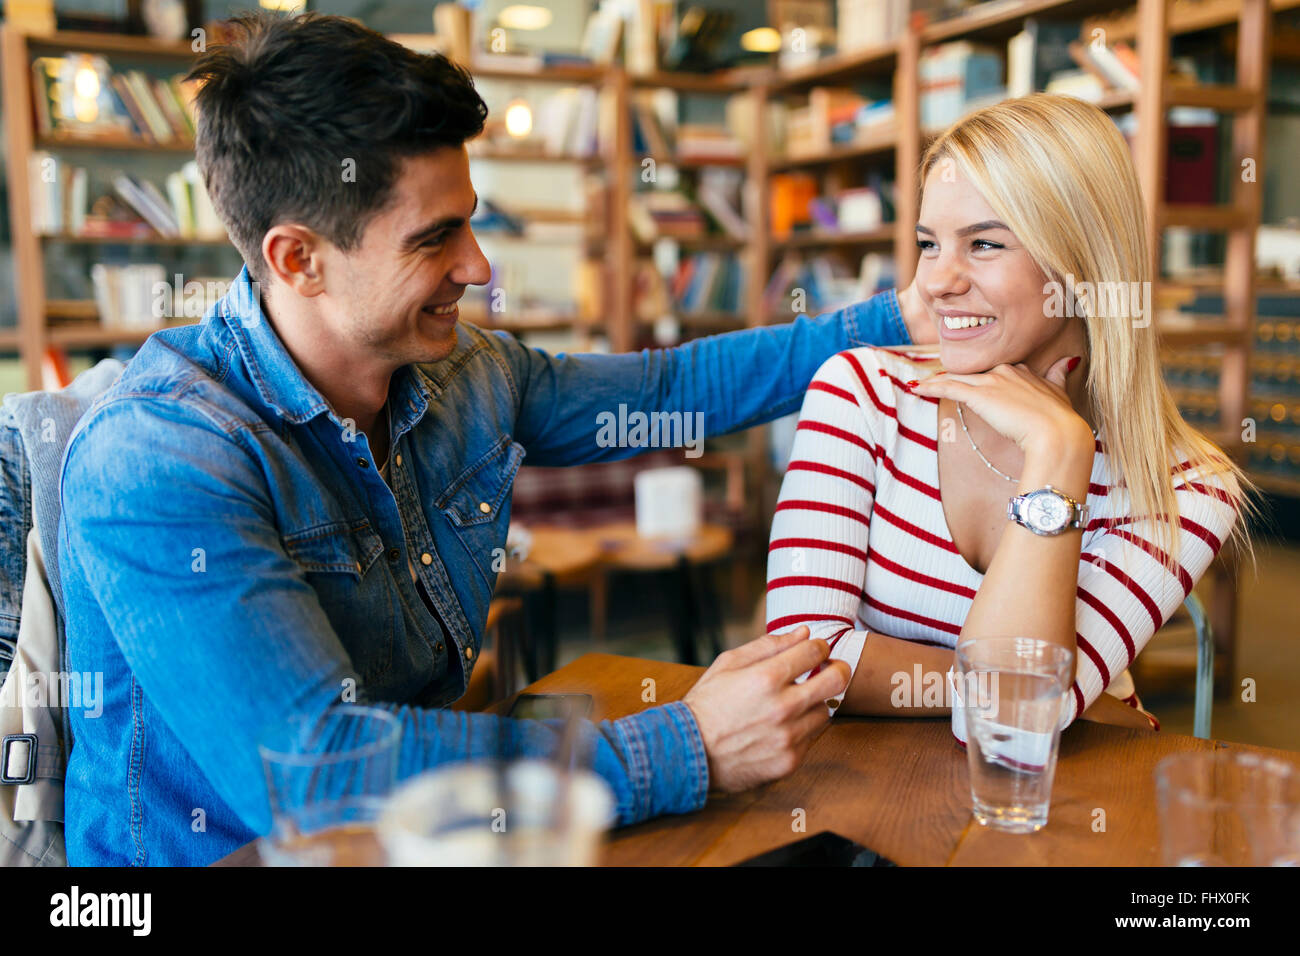 Beautiful couple in love flirting in cafe et le collage Photo Stock